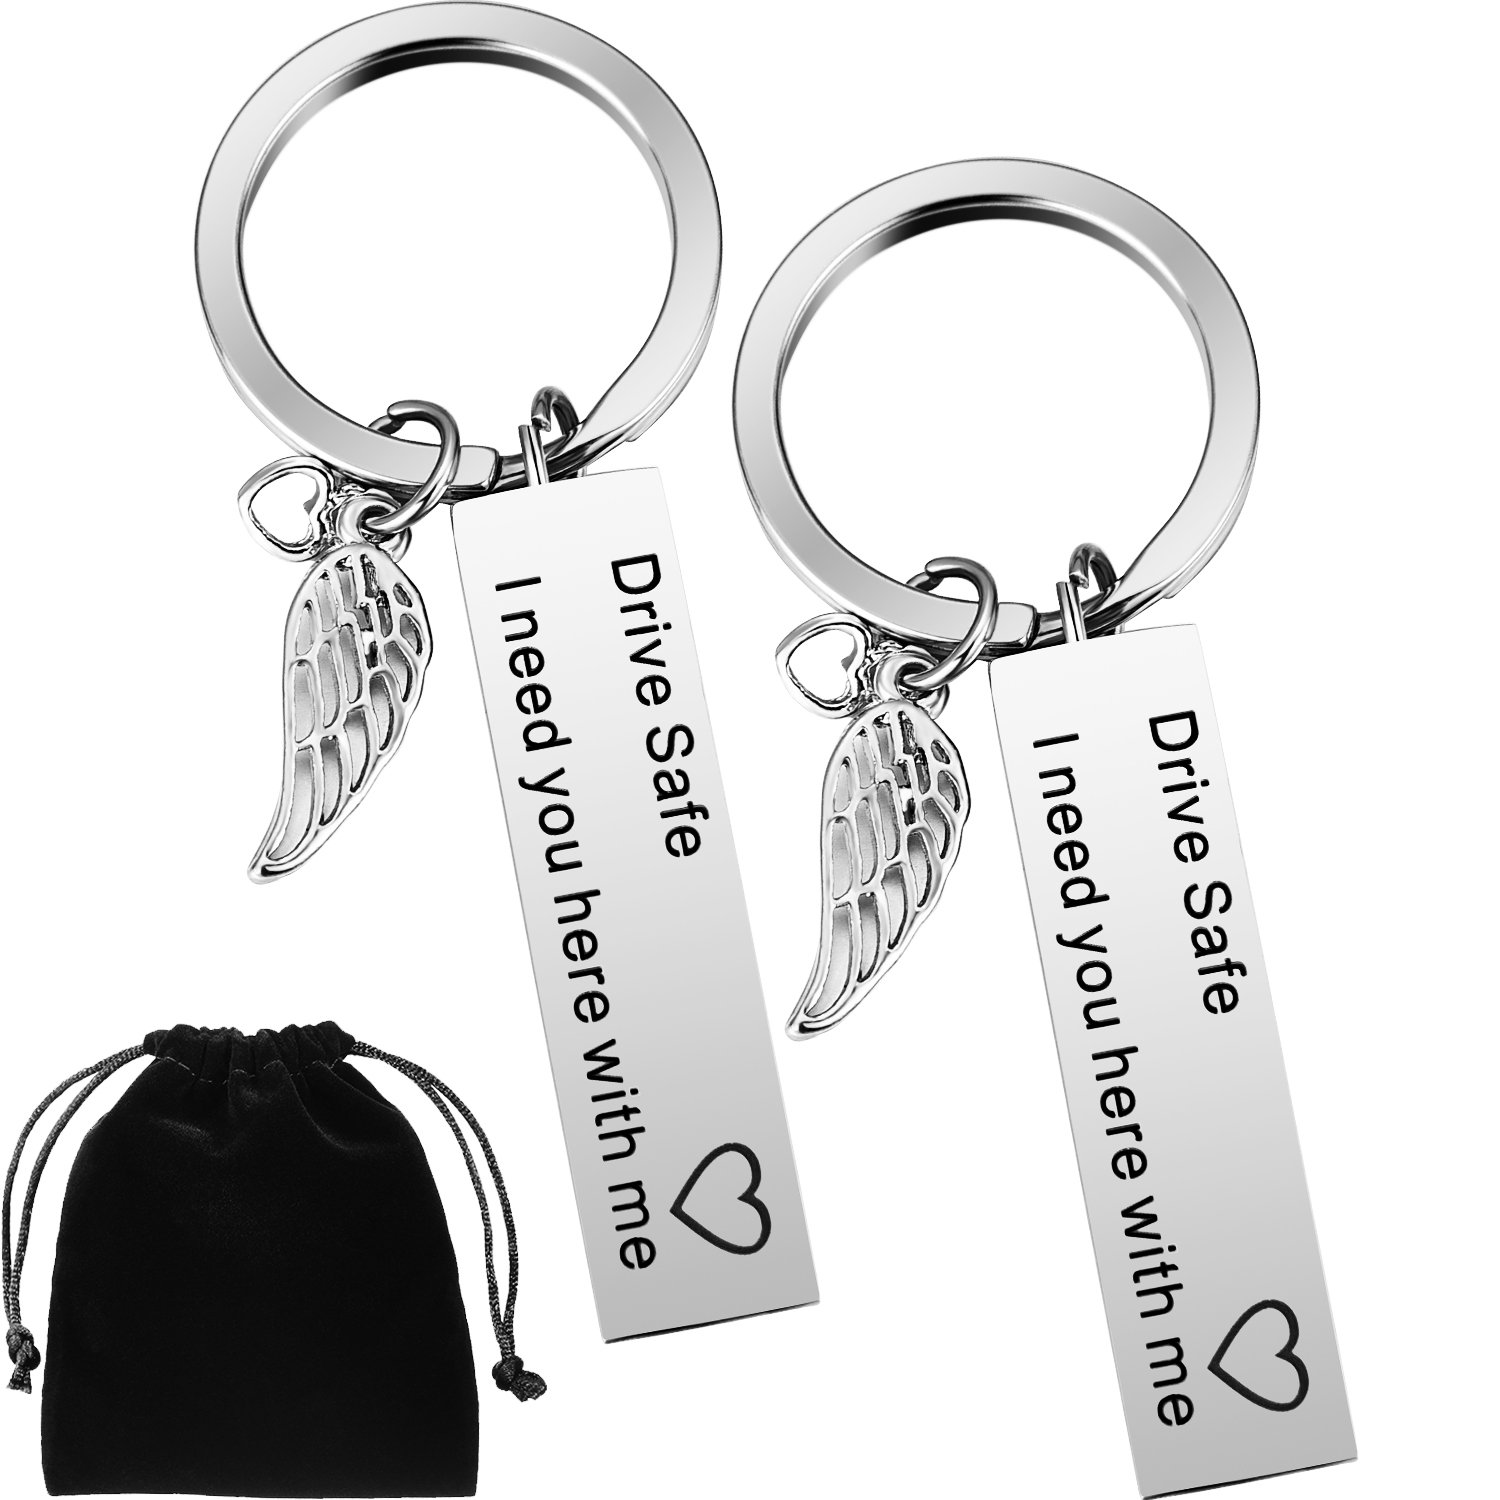 2 Pack Drive Safe Keychains with Wing Pendant I Need You Here with Me Keychain for Trucker Dad Husband Boyfriend Valentines Day Gift Boao